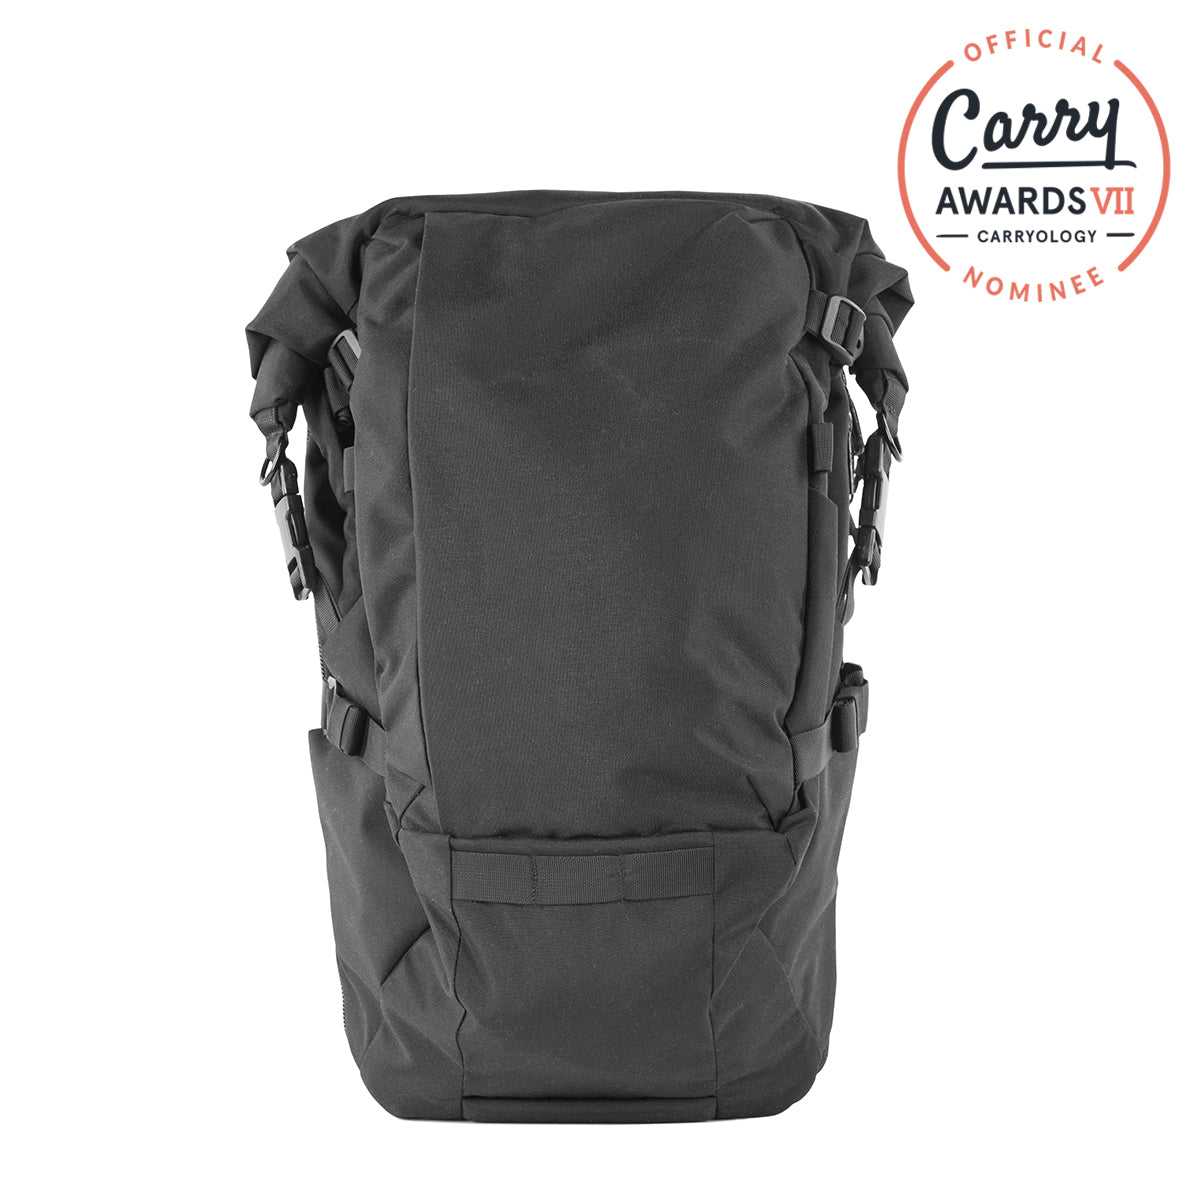 ATD1 Backpack - Black Cordura® Fabric